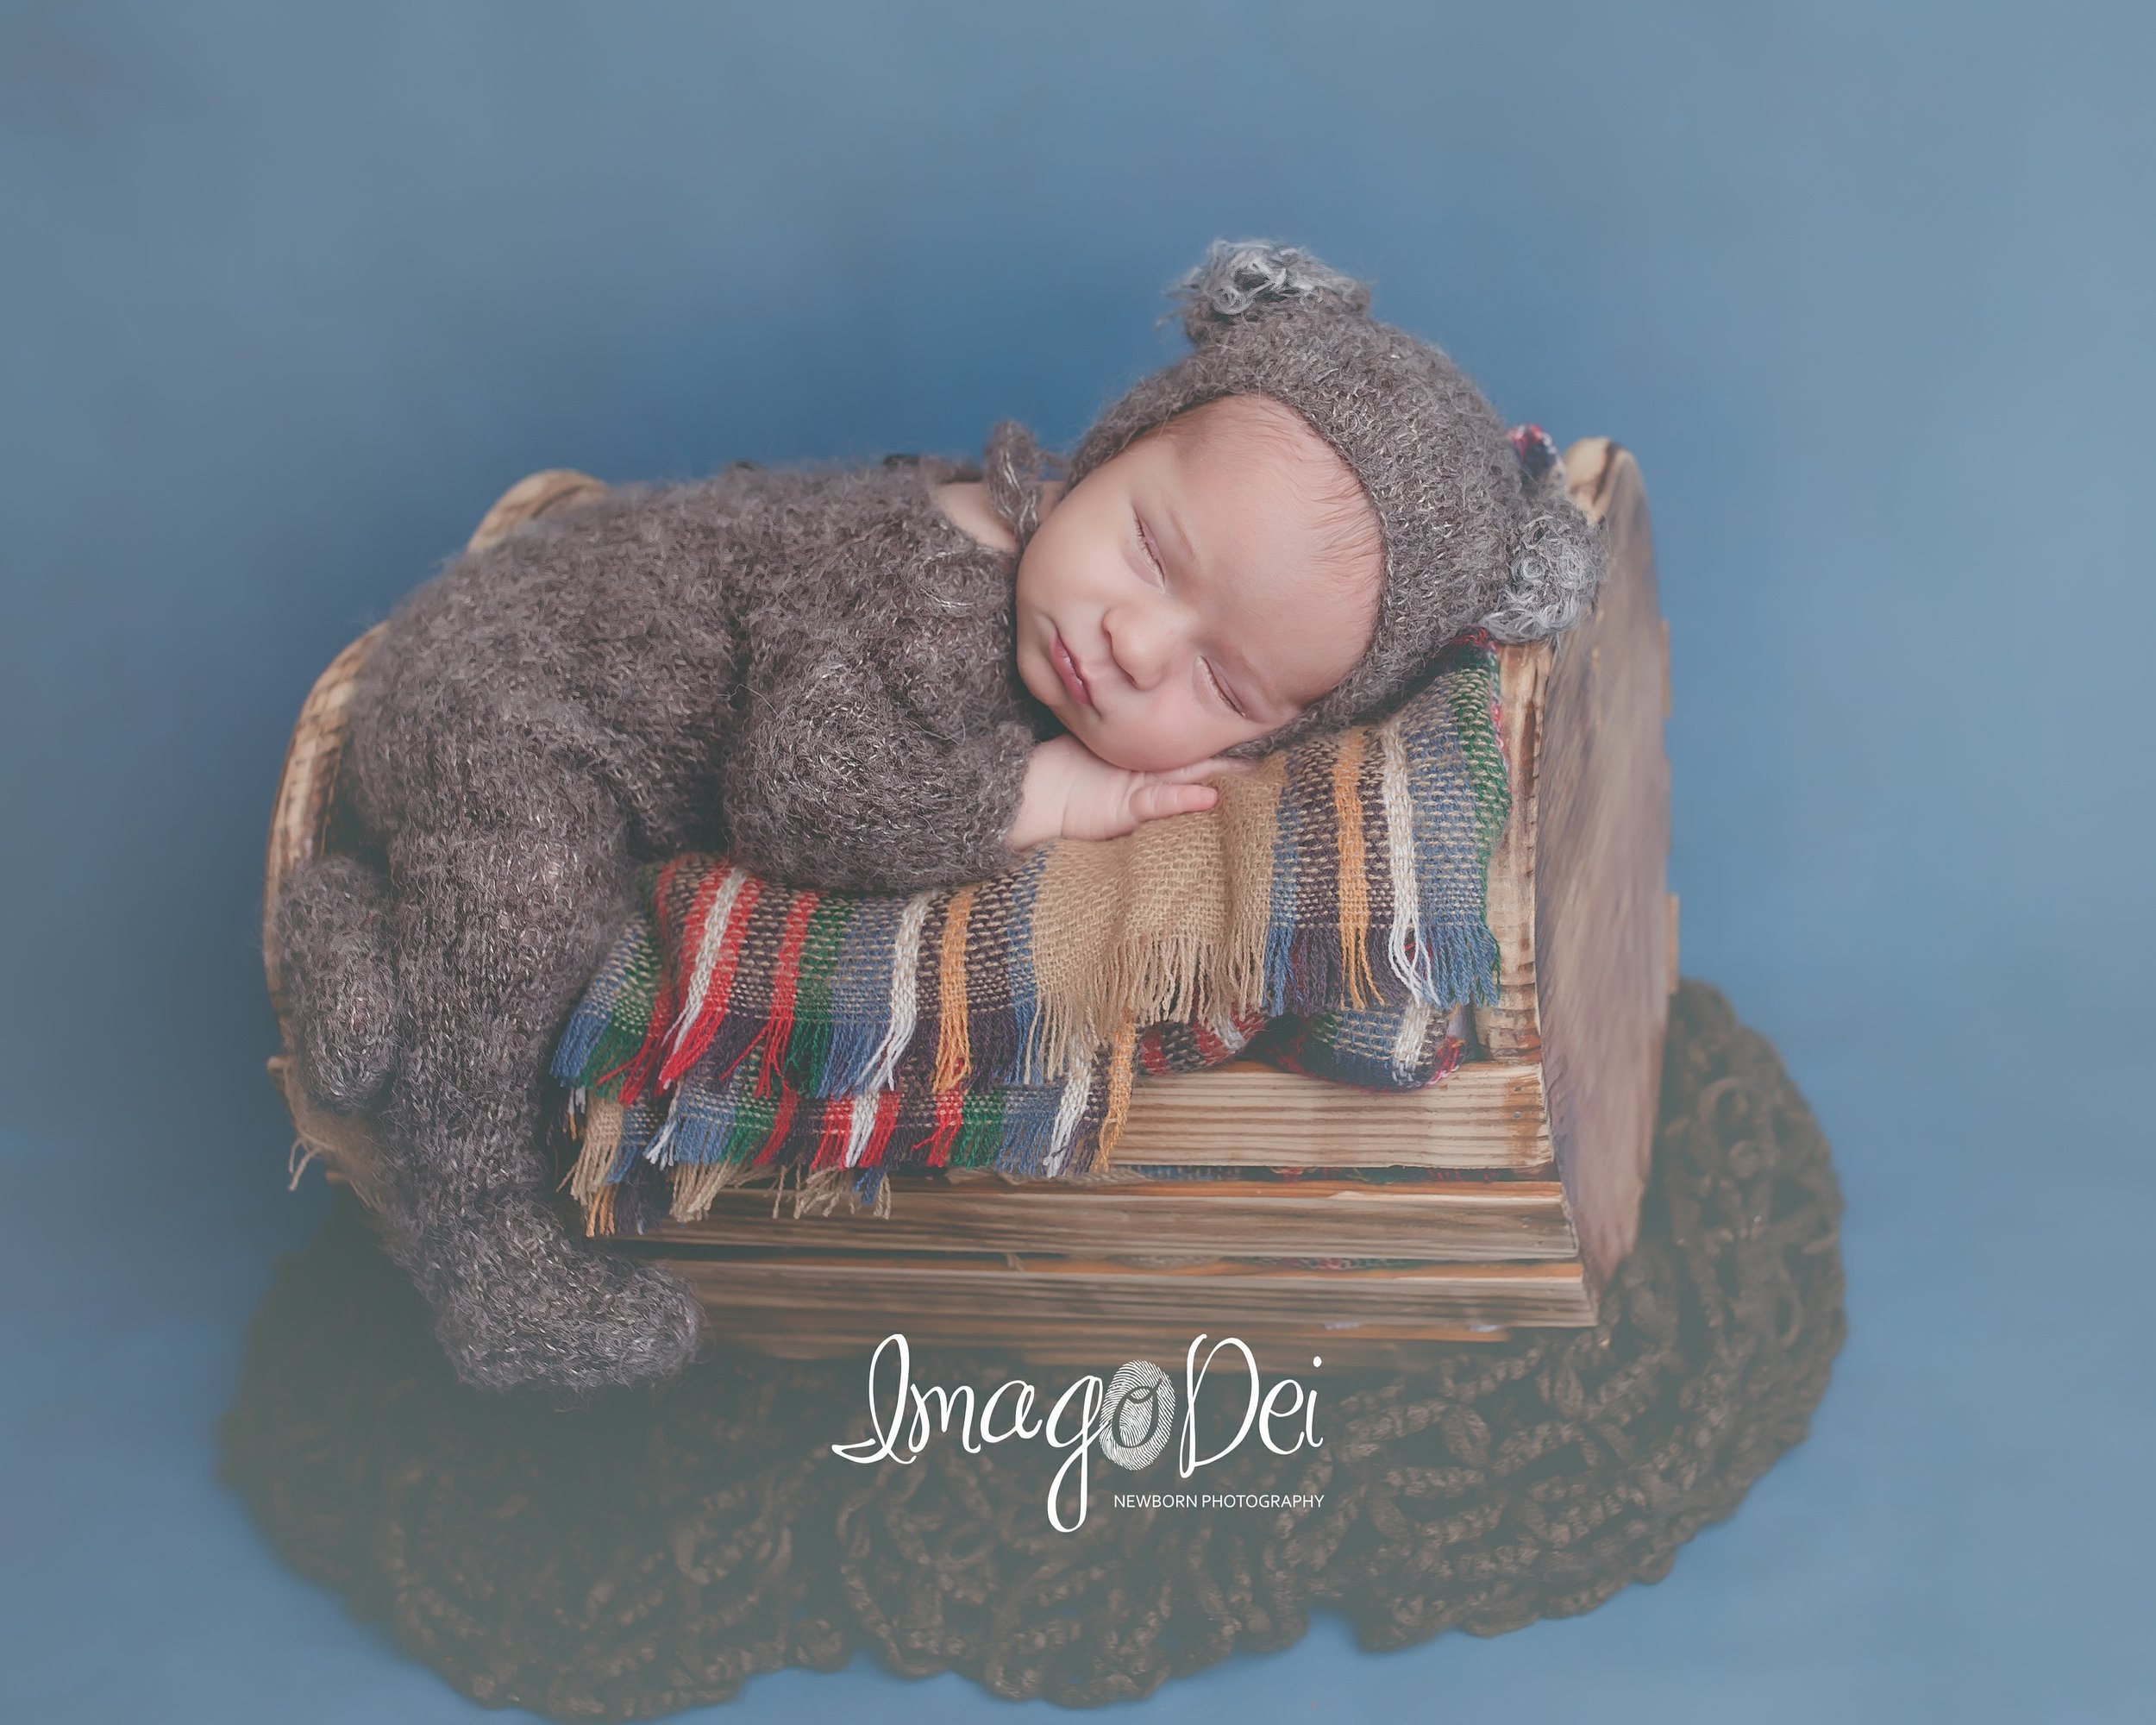 Imago Dei Newborn Photography- Lake Reg koala-1.jpg